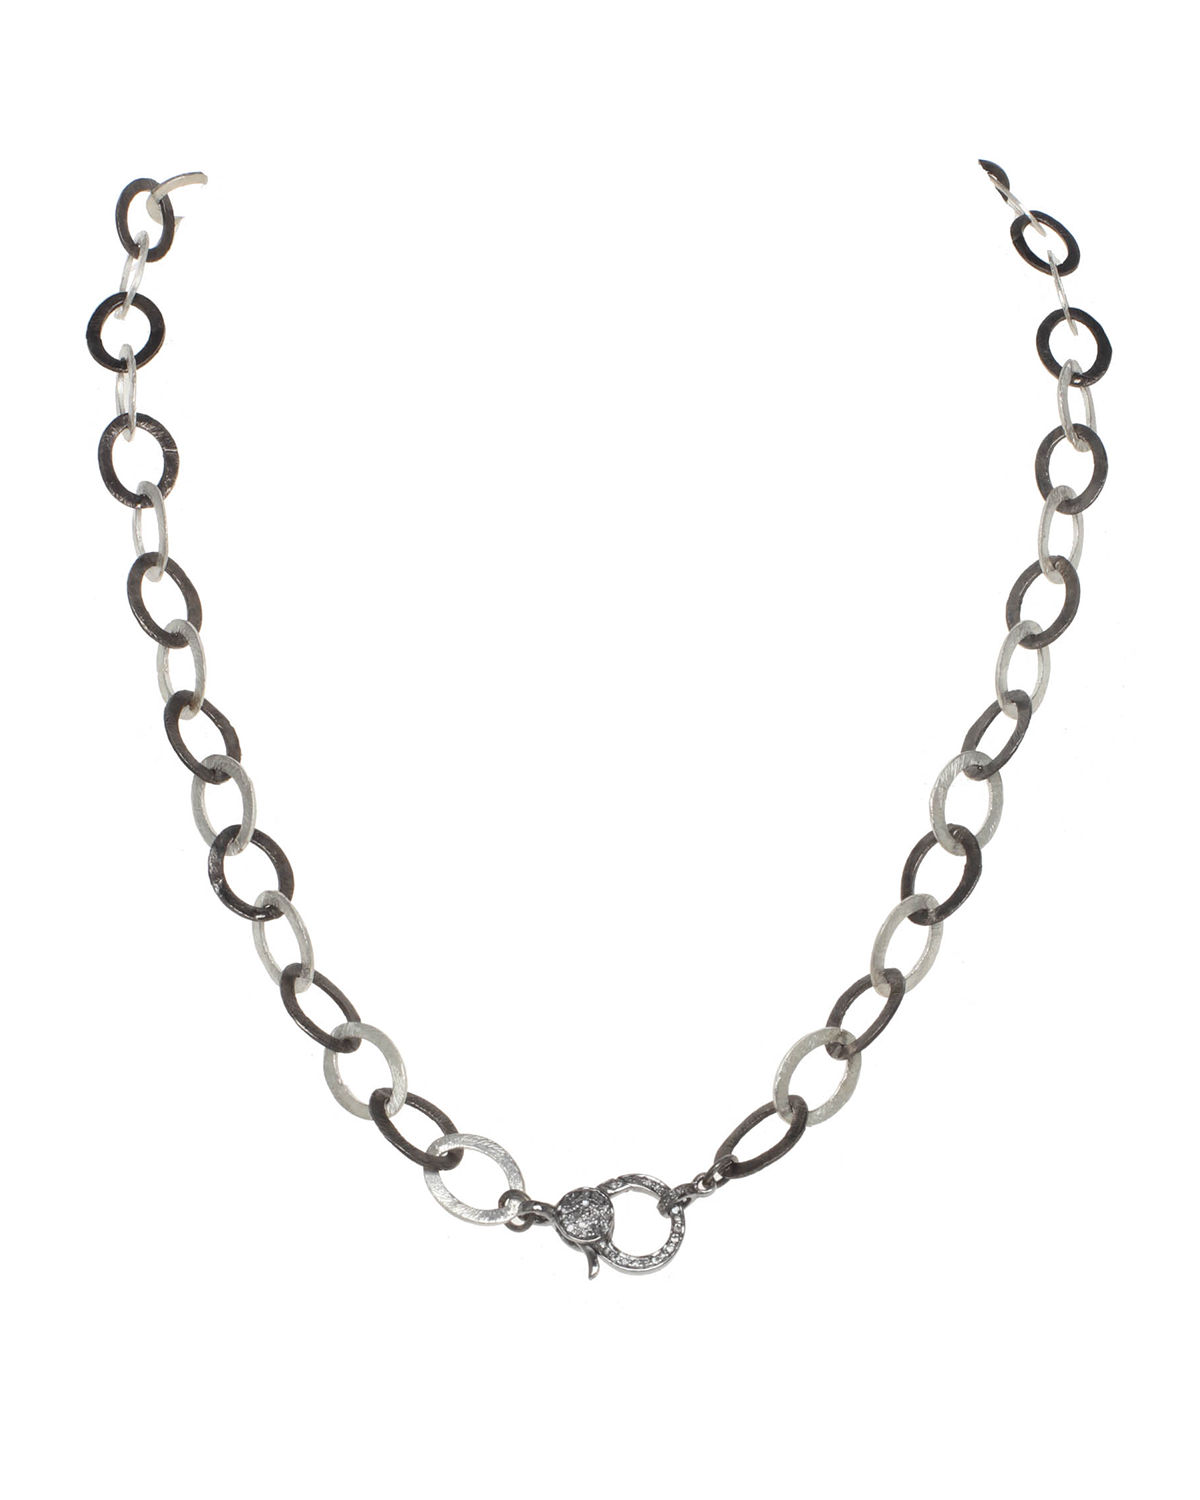 Matte Vermeil and Sterling Silver Flat Chain Necklace with Diamond Clasp